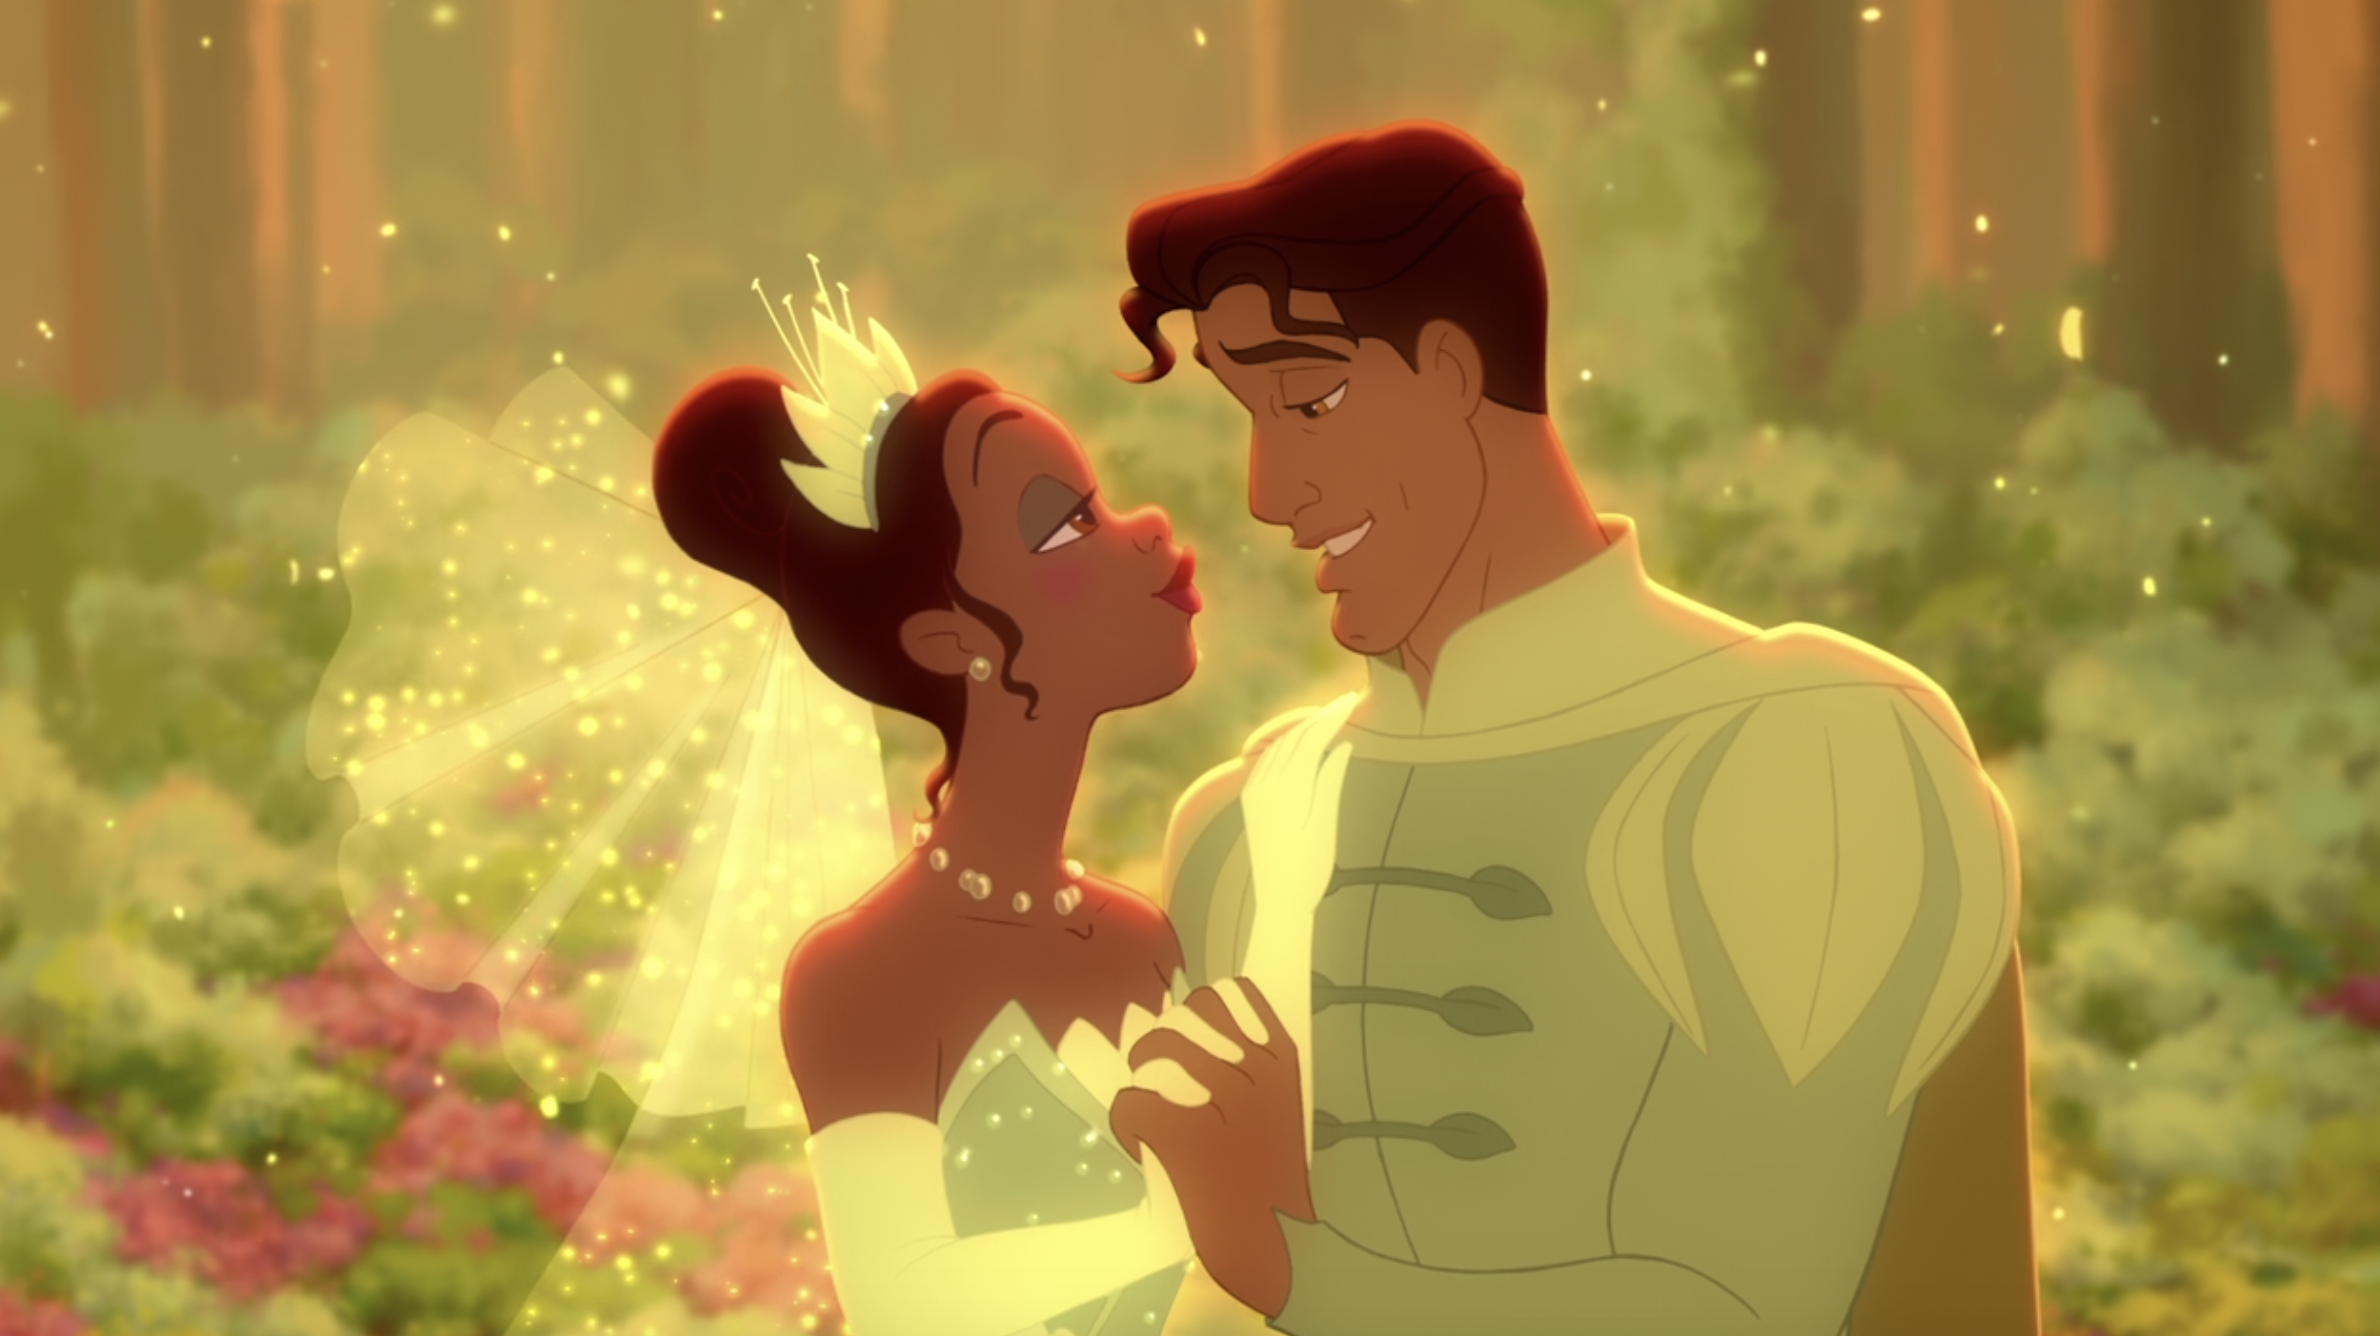 Tiana and Naveen gazing into each other's eyes